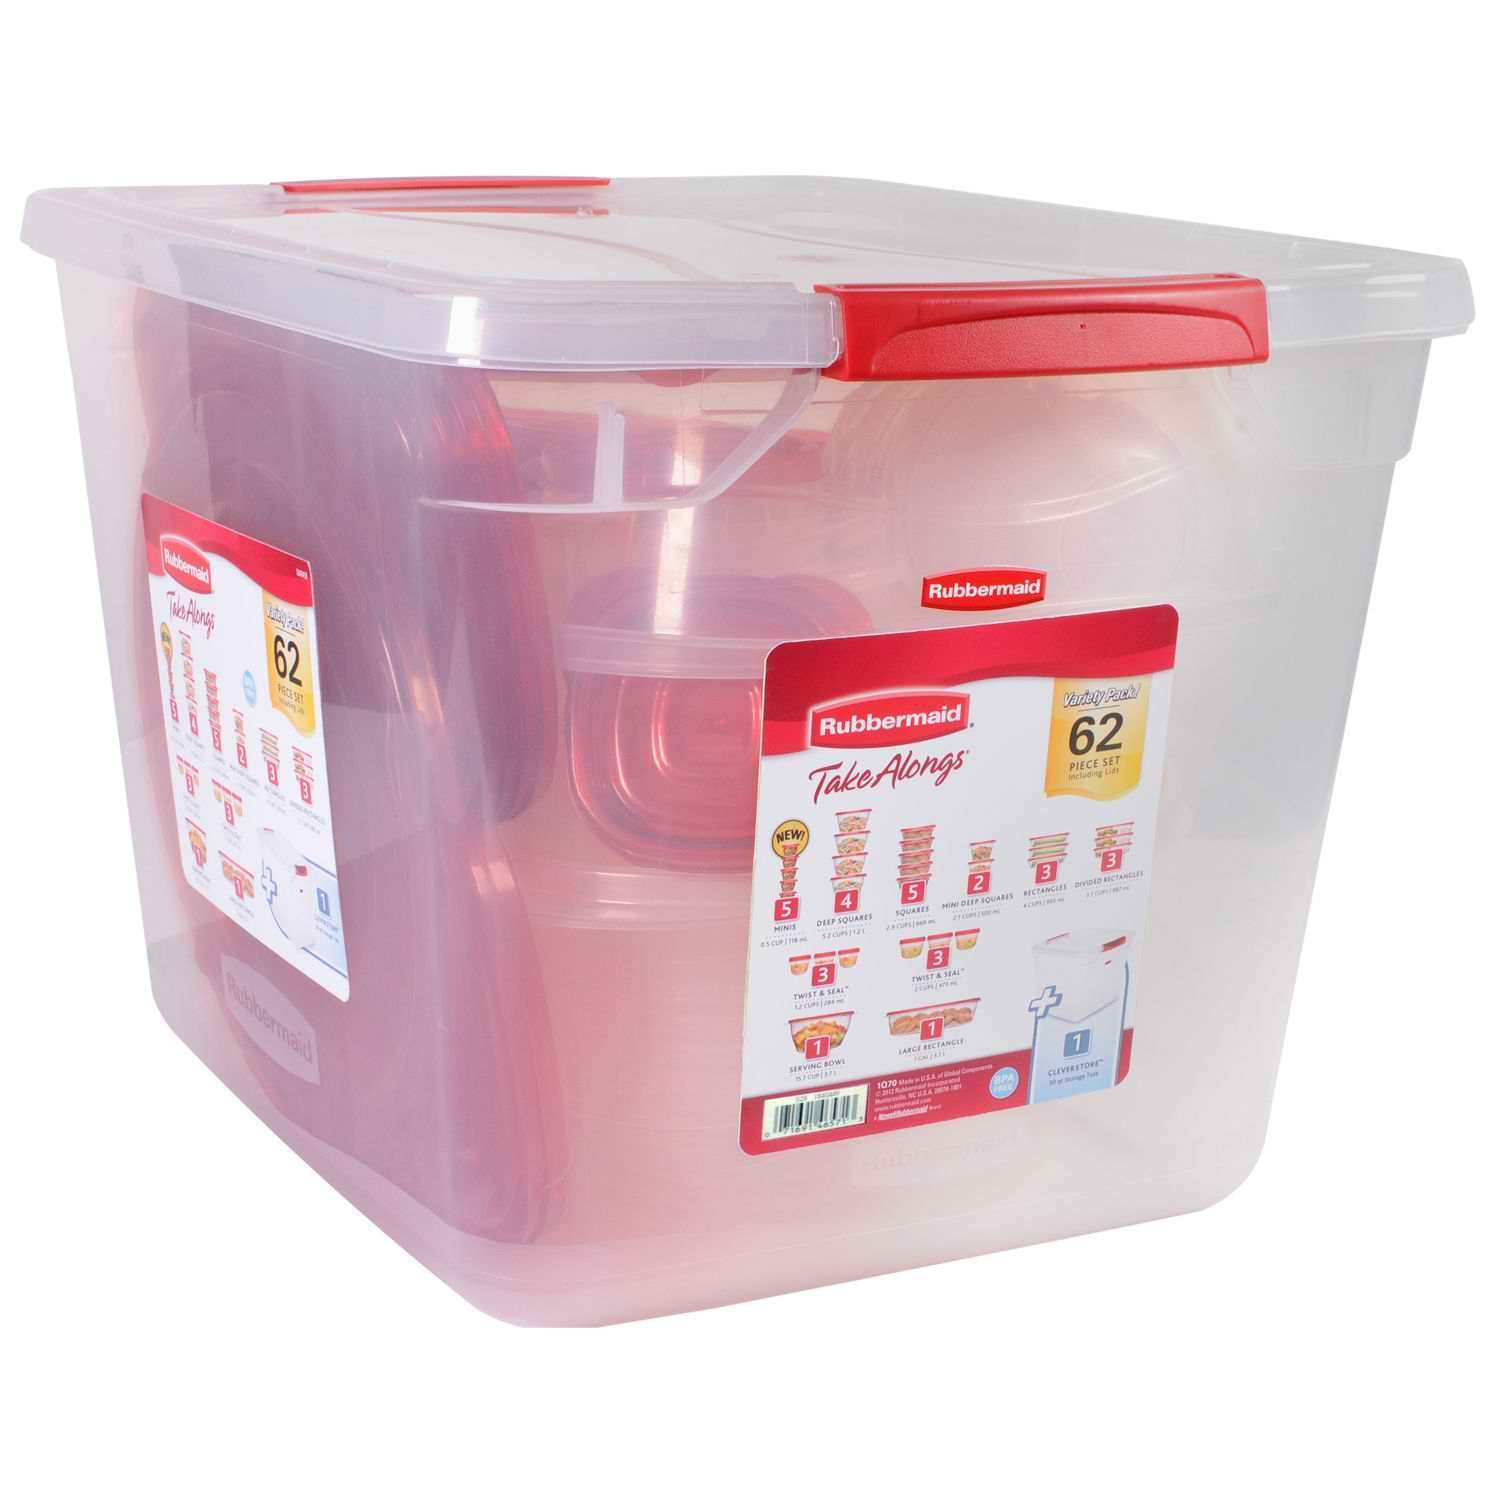 Rubbermaid 62 pc Take Alongs Set Plastic Food Storage Bowls Containers w/ Tote 1